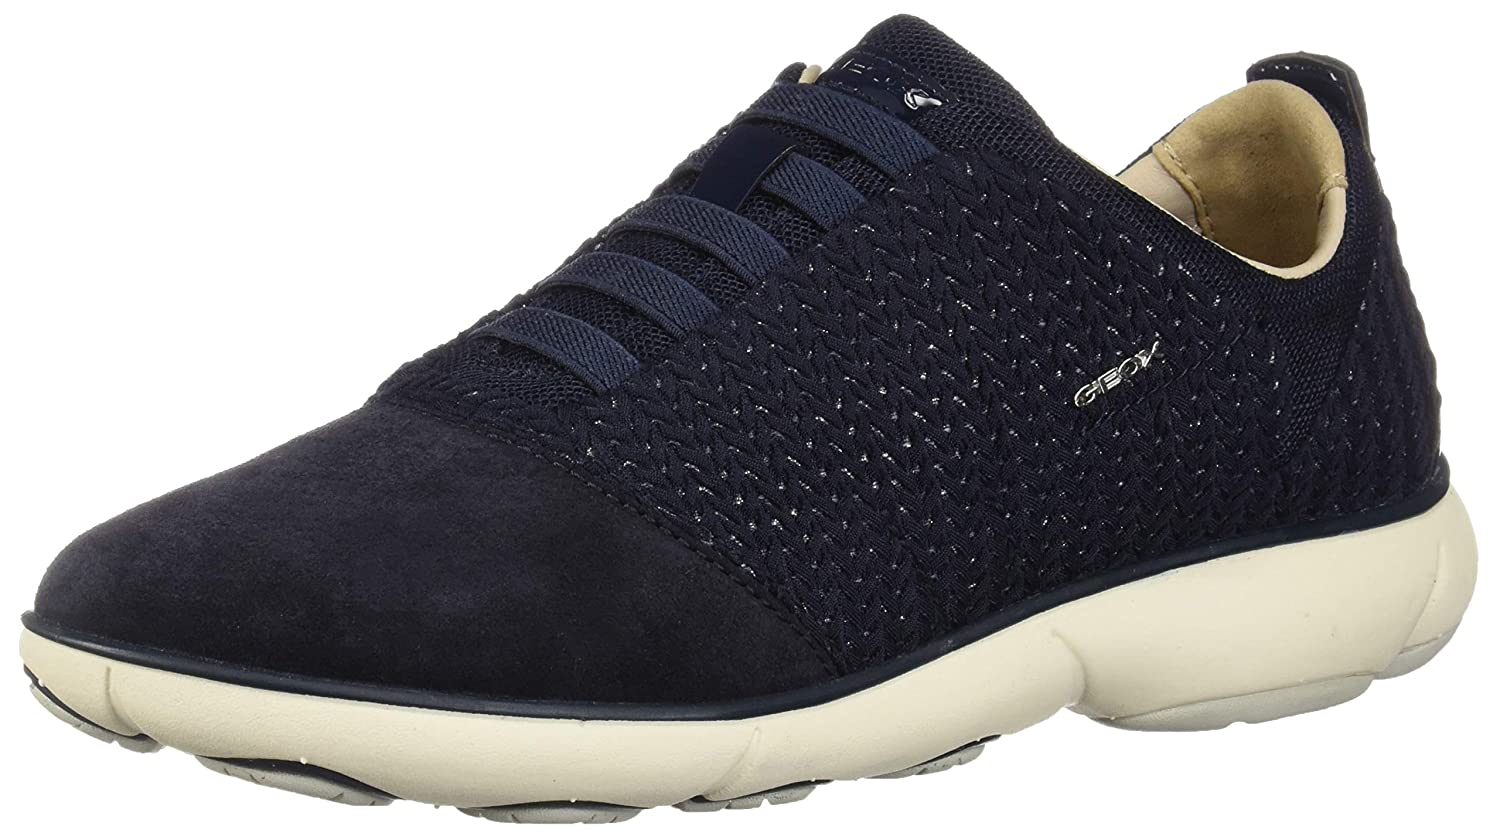 bluee (Navy C4002) Geox Women's Nebula C Leather Sneaker Black